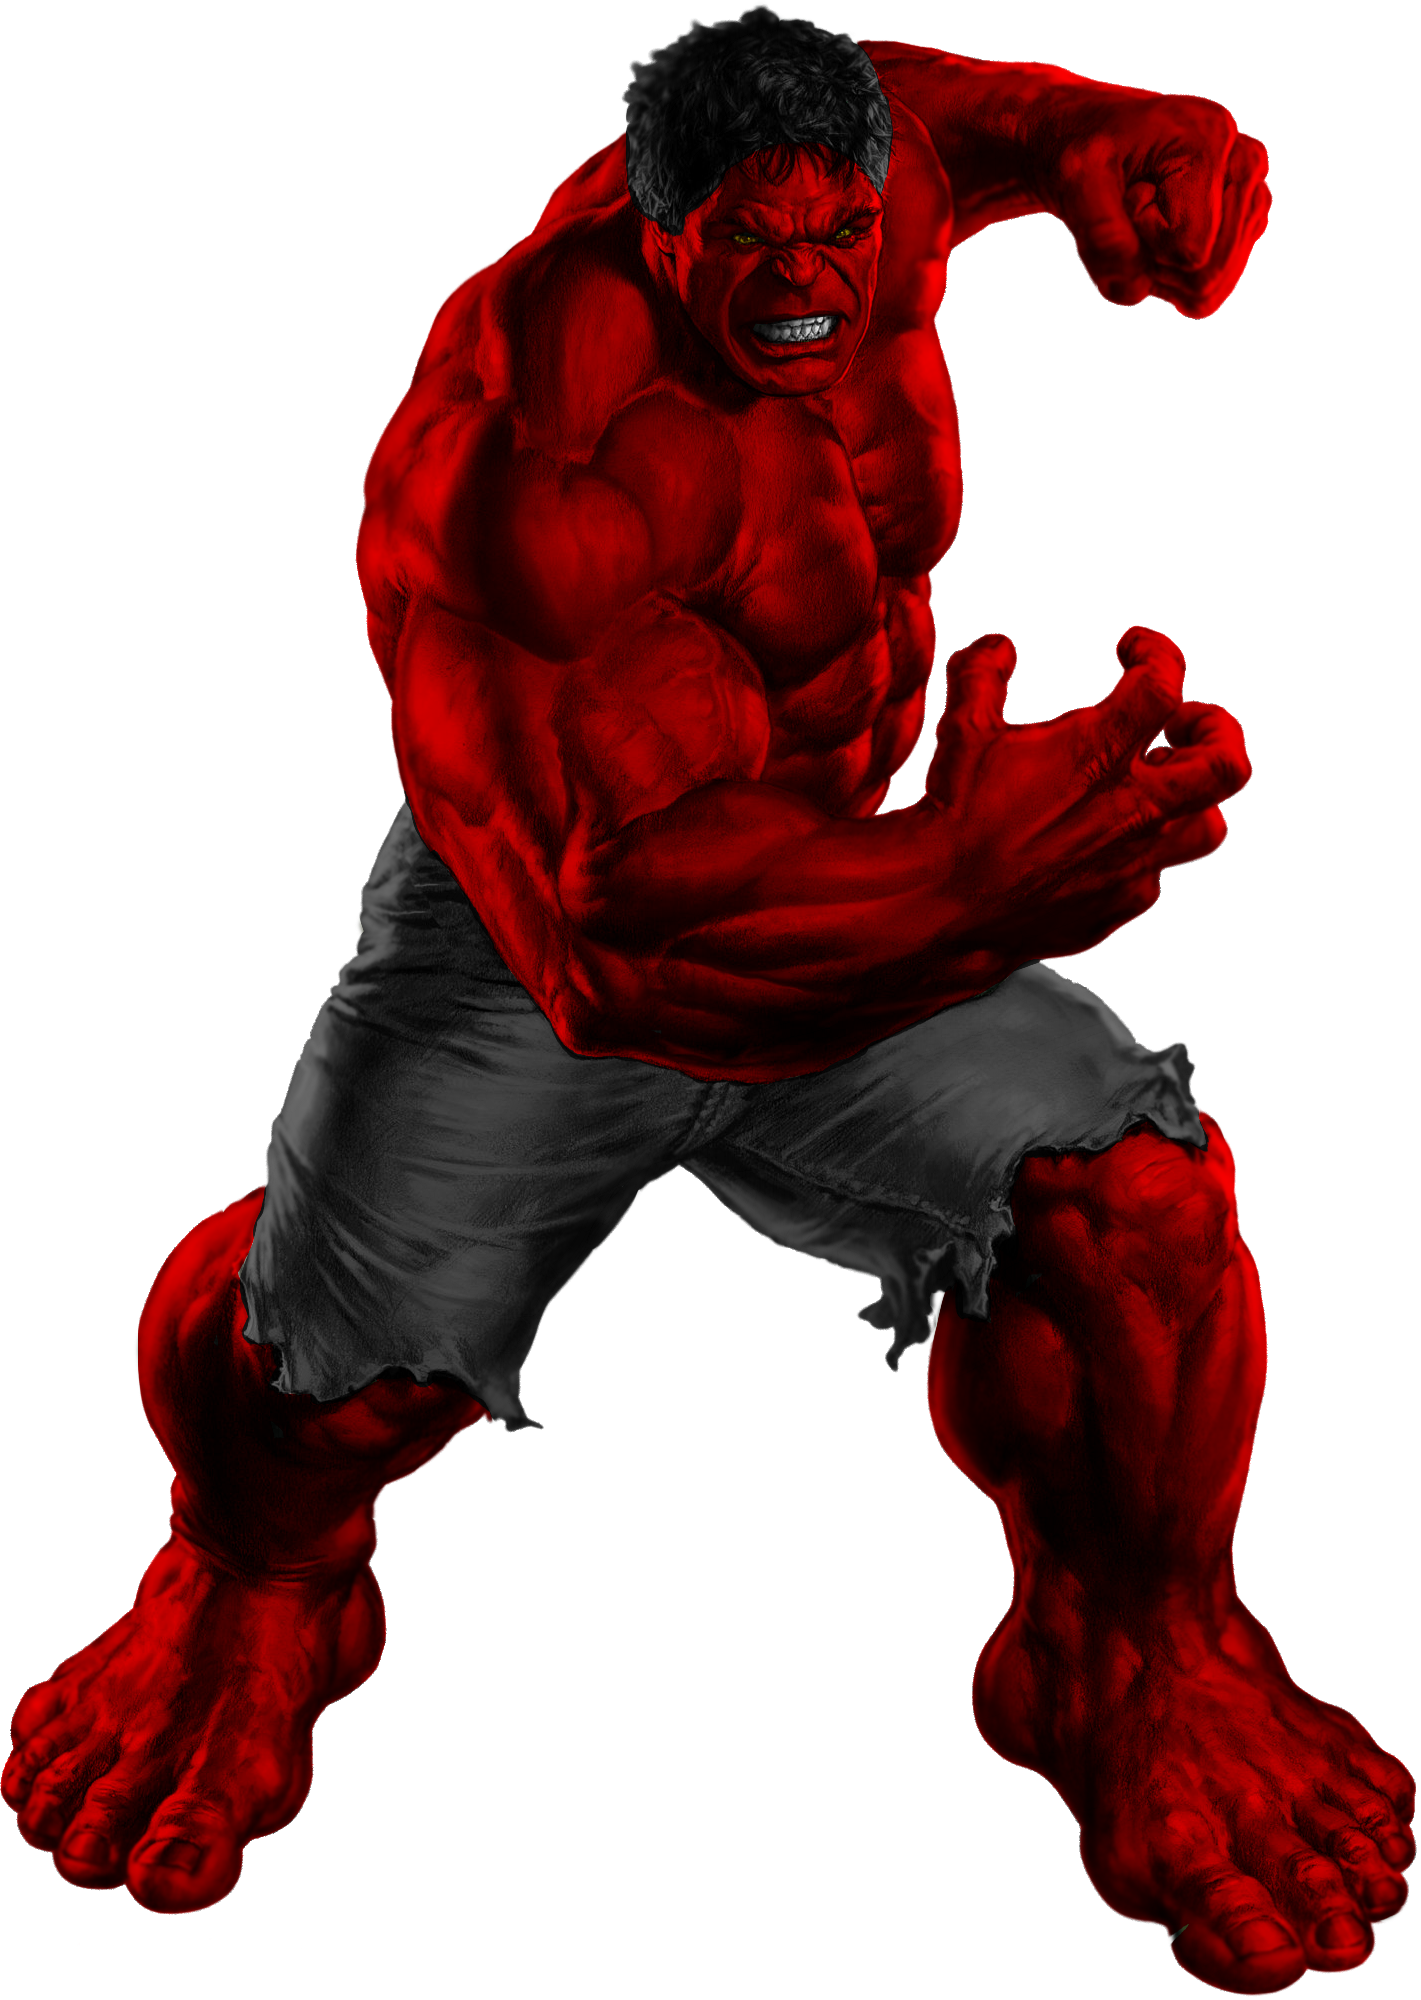 Red hulk transparent by asthonx1 on deviantart - Pictures of red hulk ...